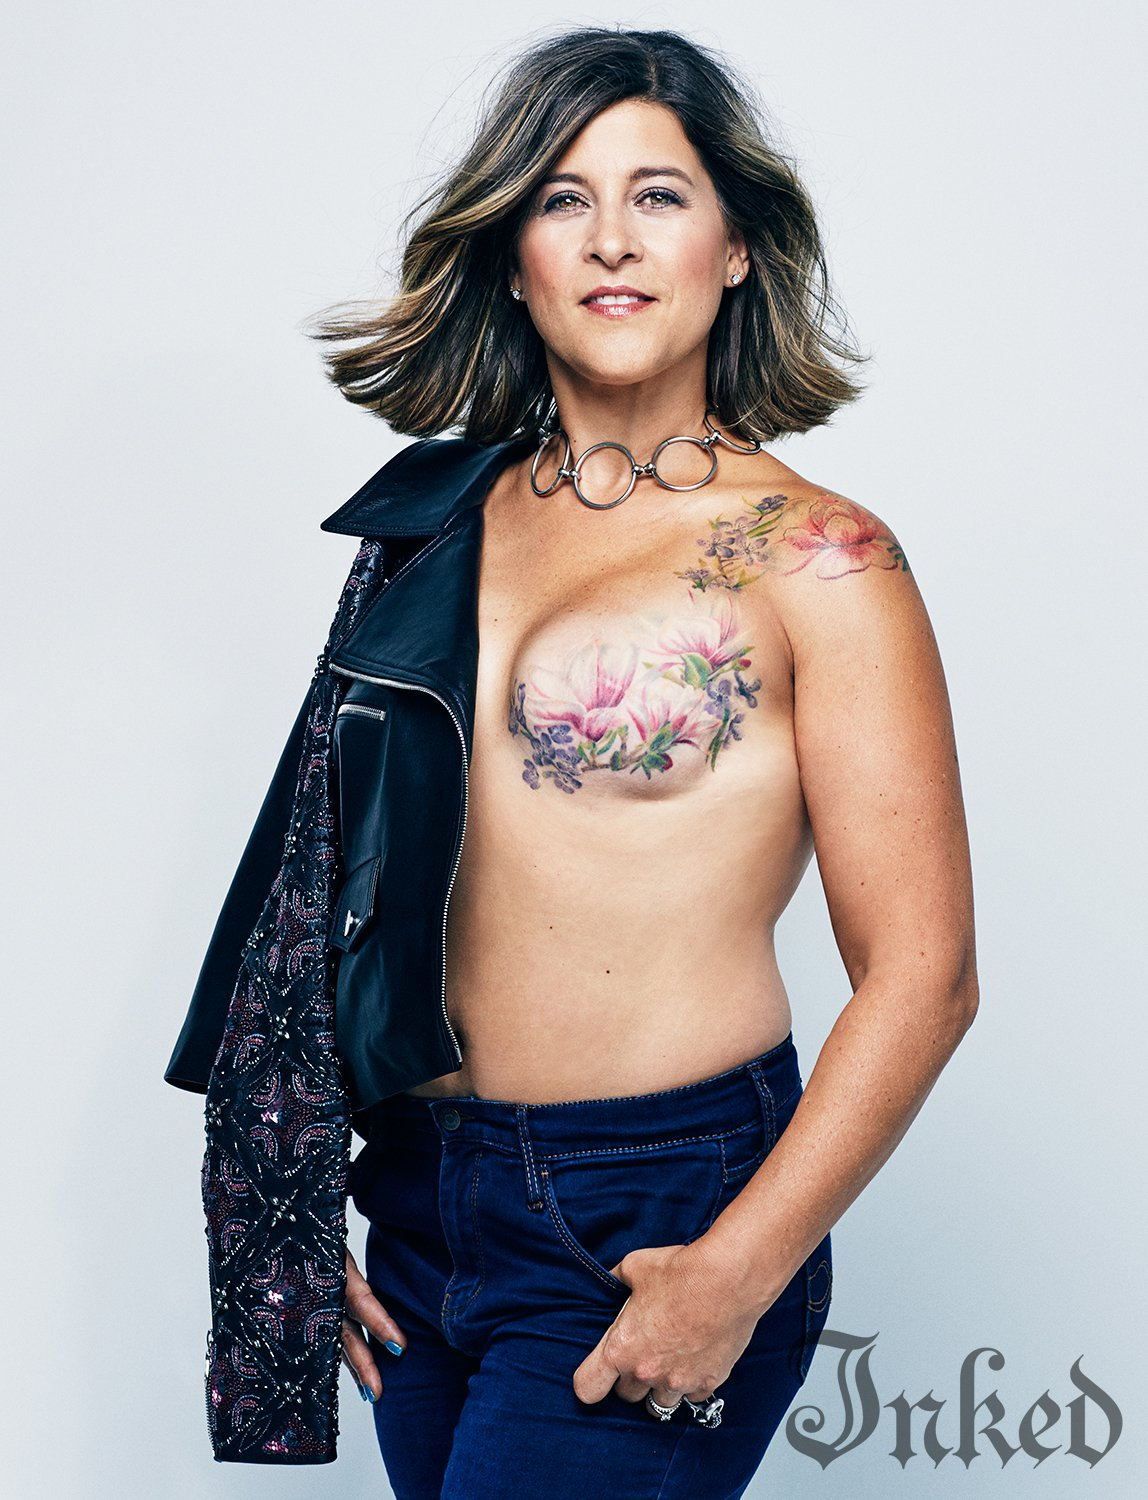 Topless women with tattoos